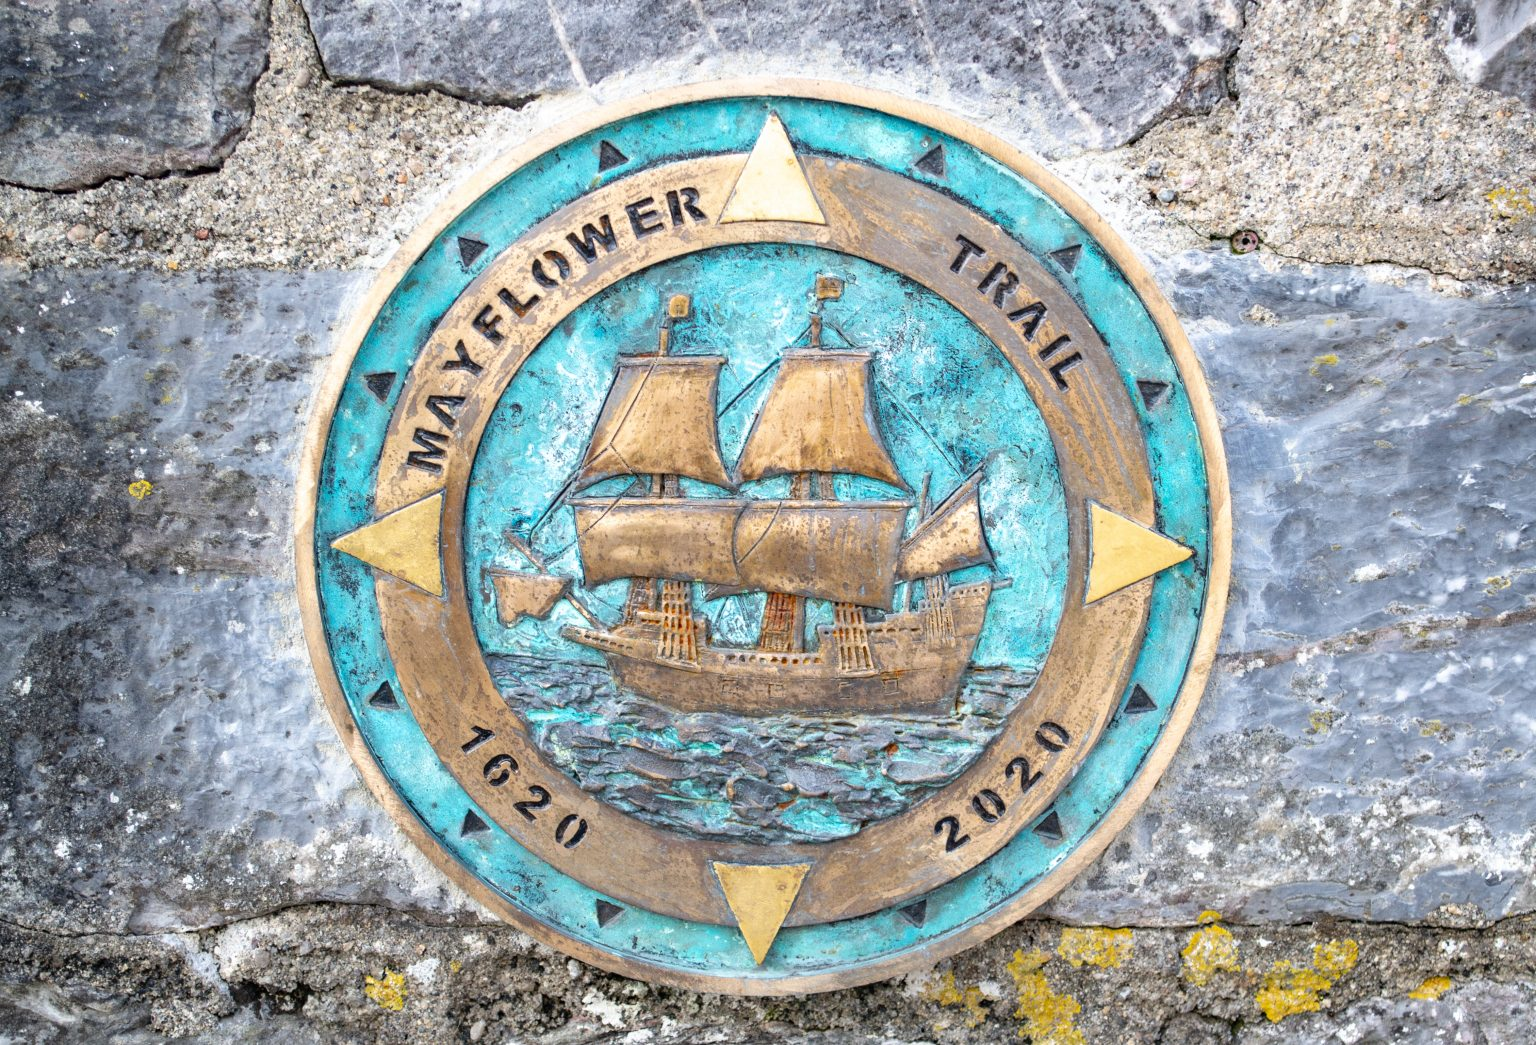 Mayflower Heritage Trail